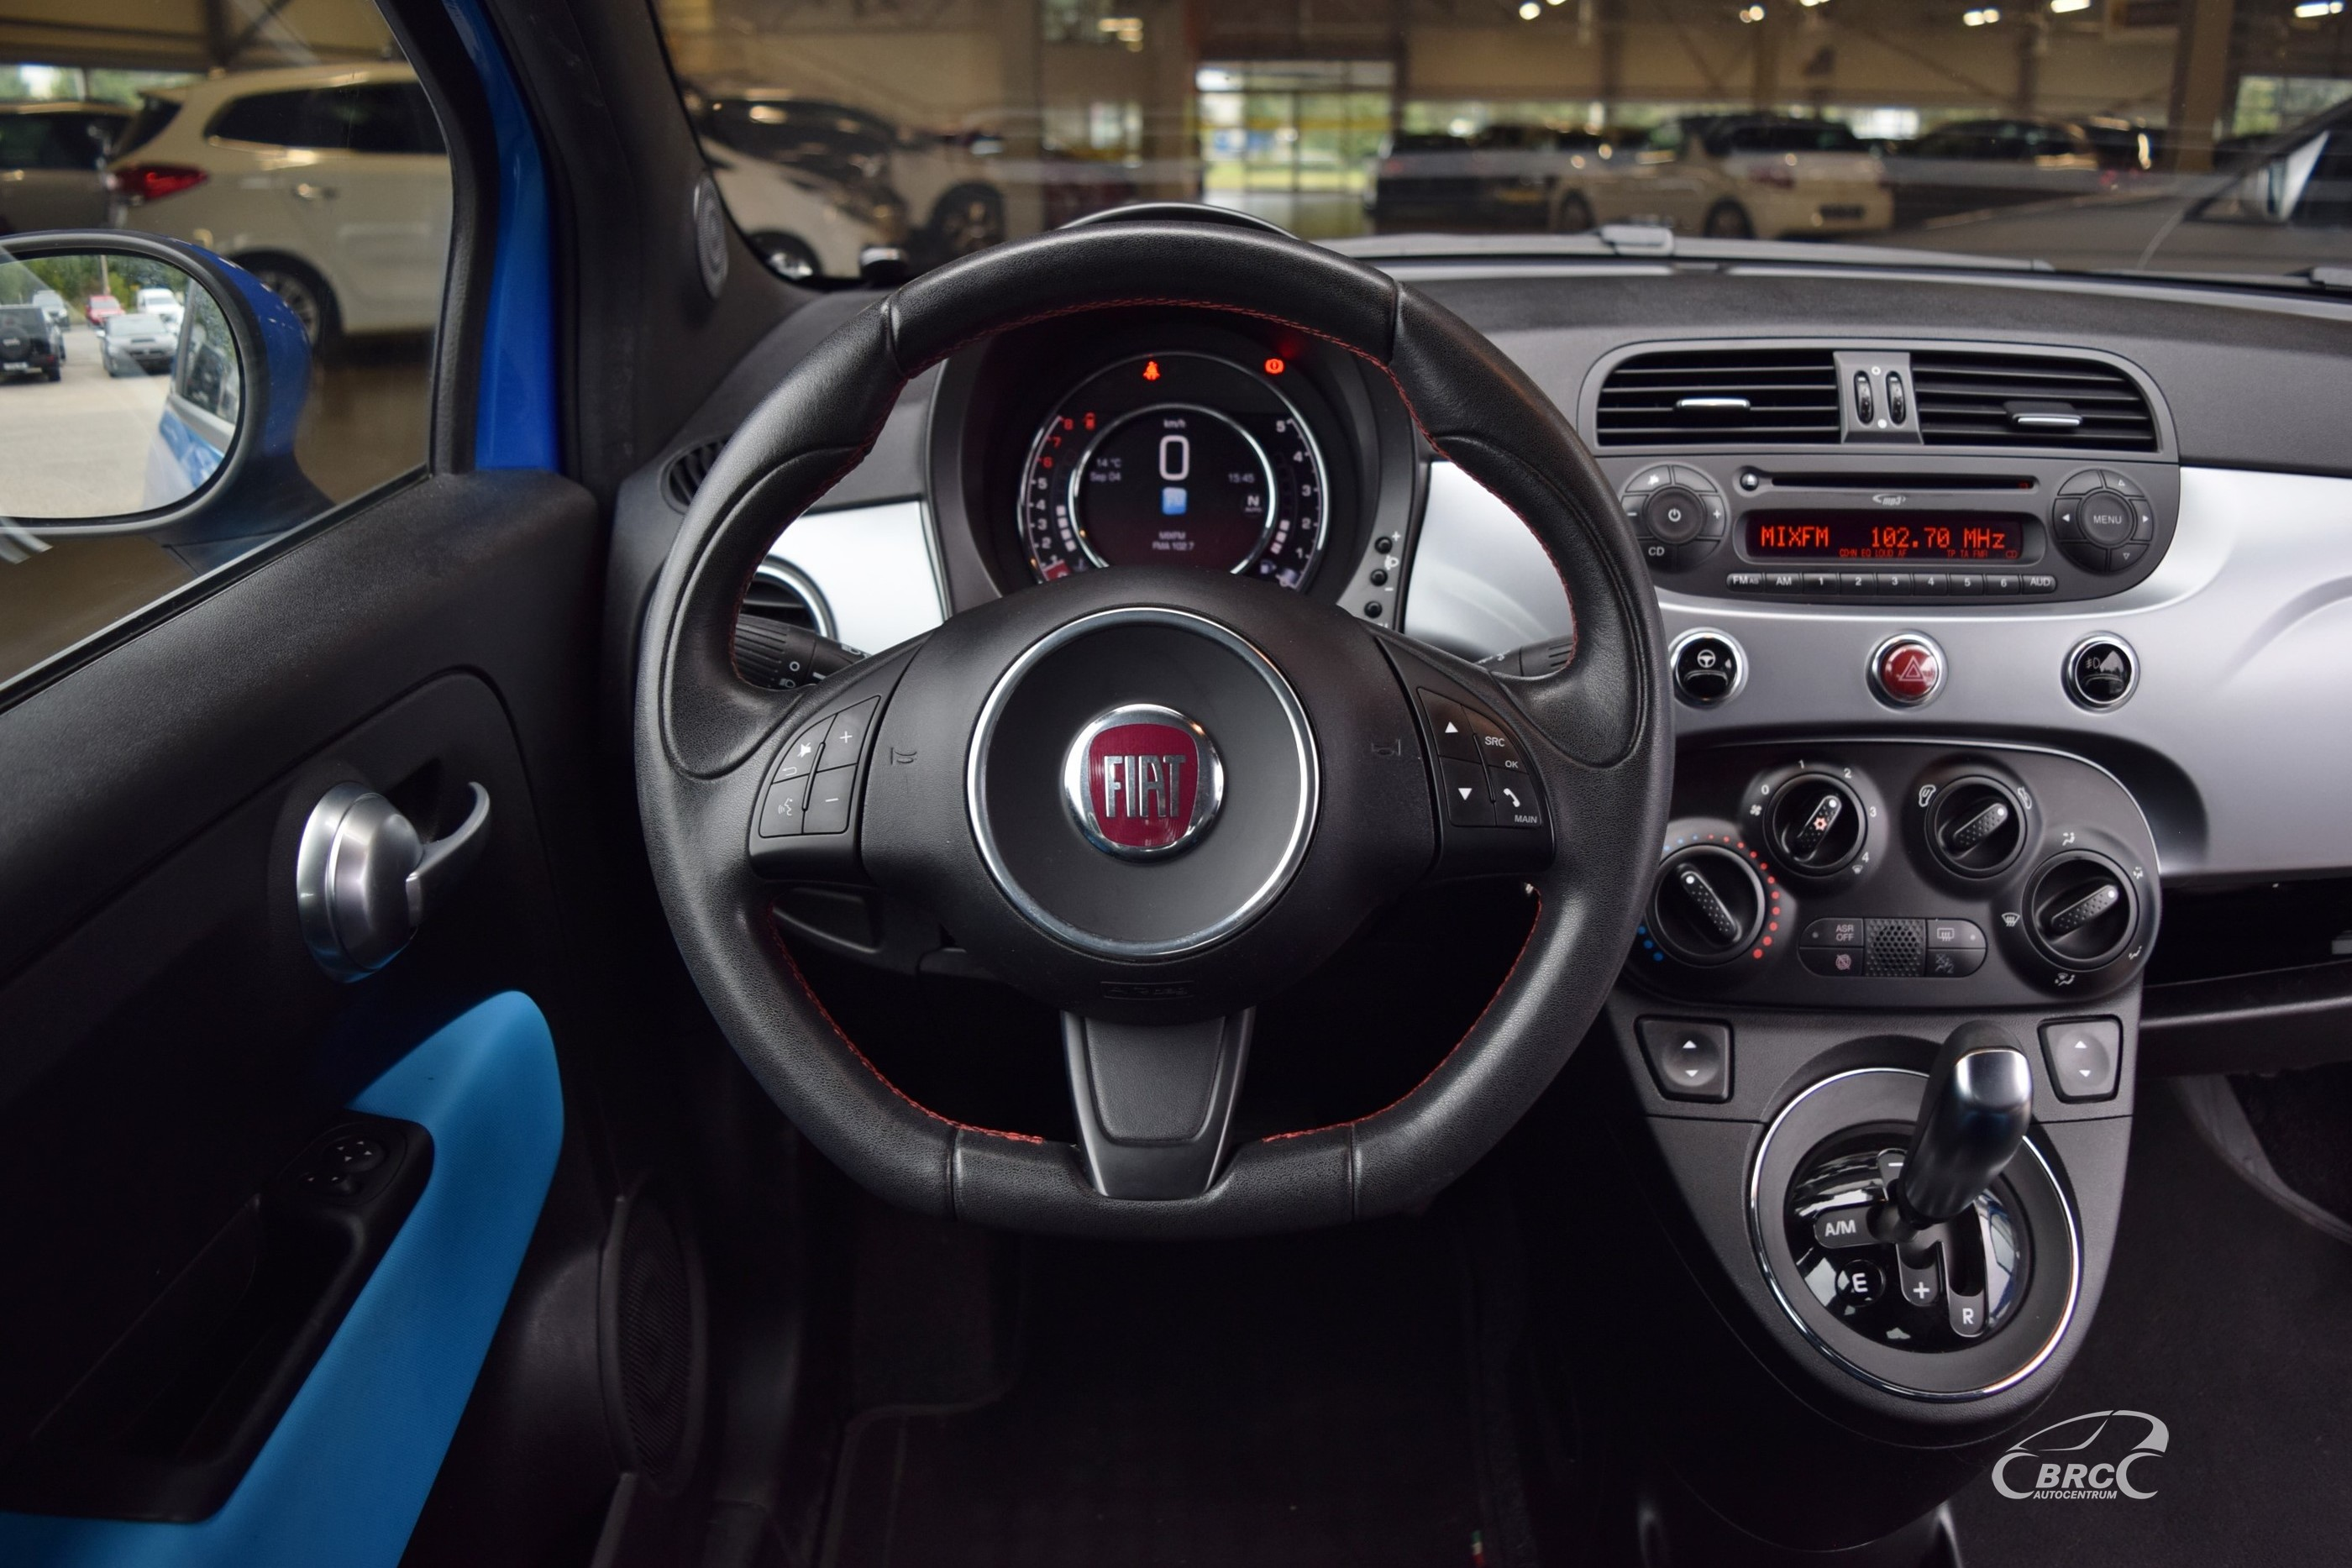 Fiat 500 S A/T